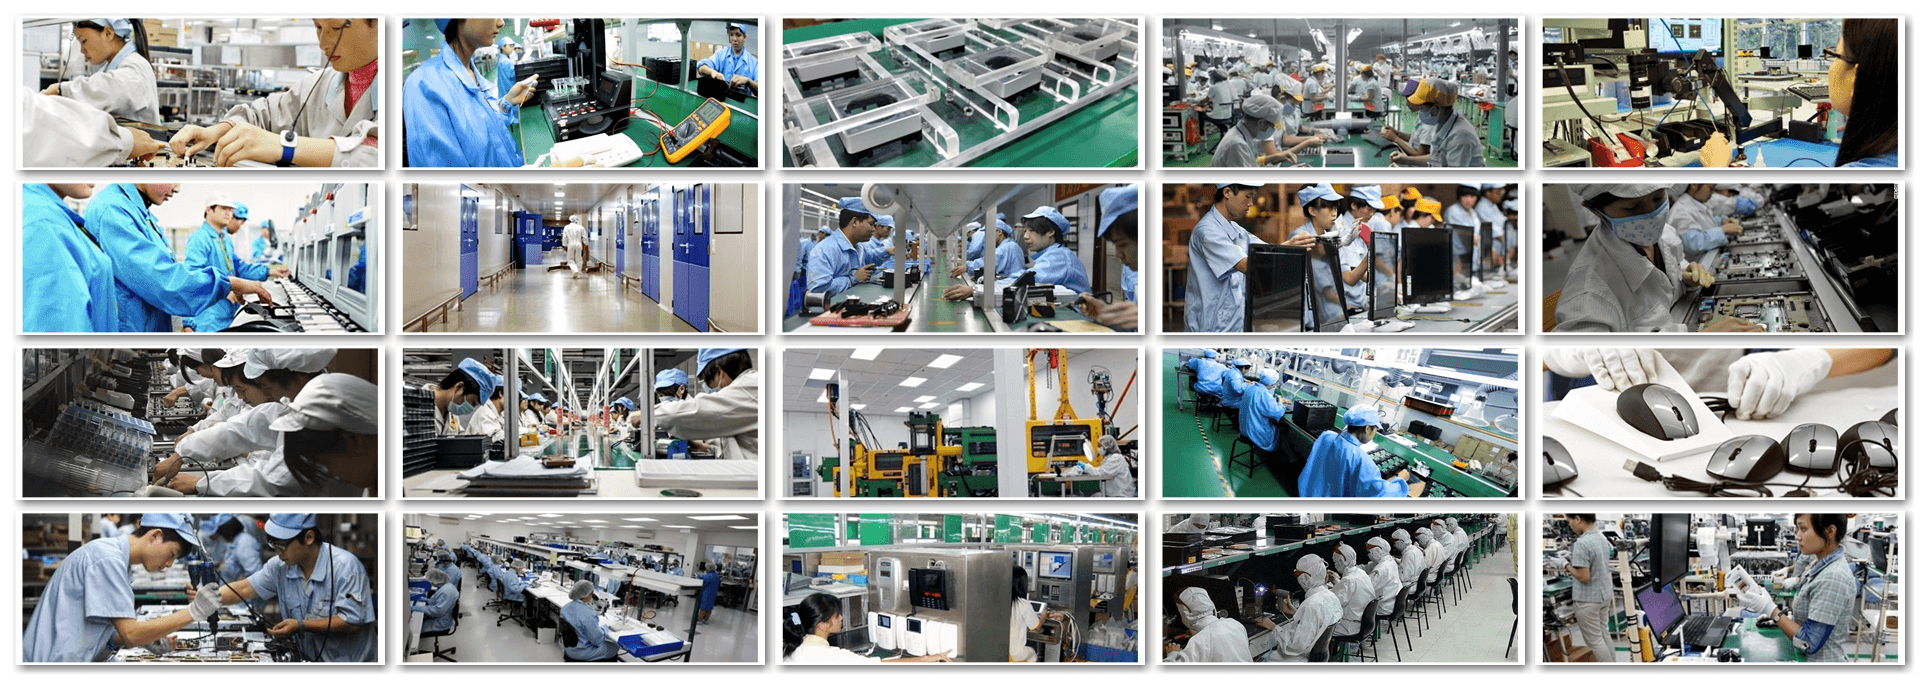 FINAL ASSEMBLY & MASS MANUFACTURING LINES